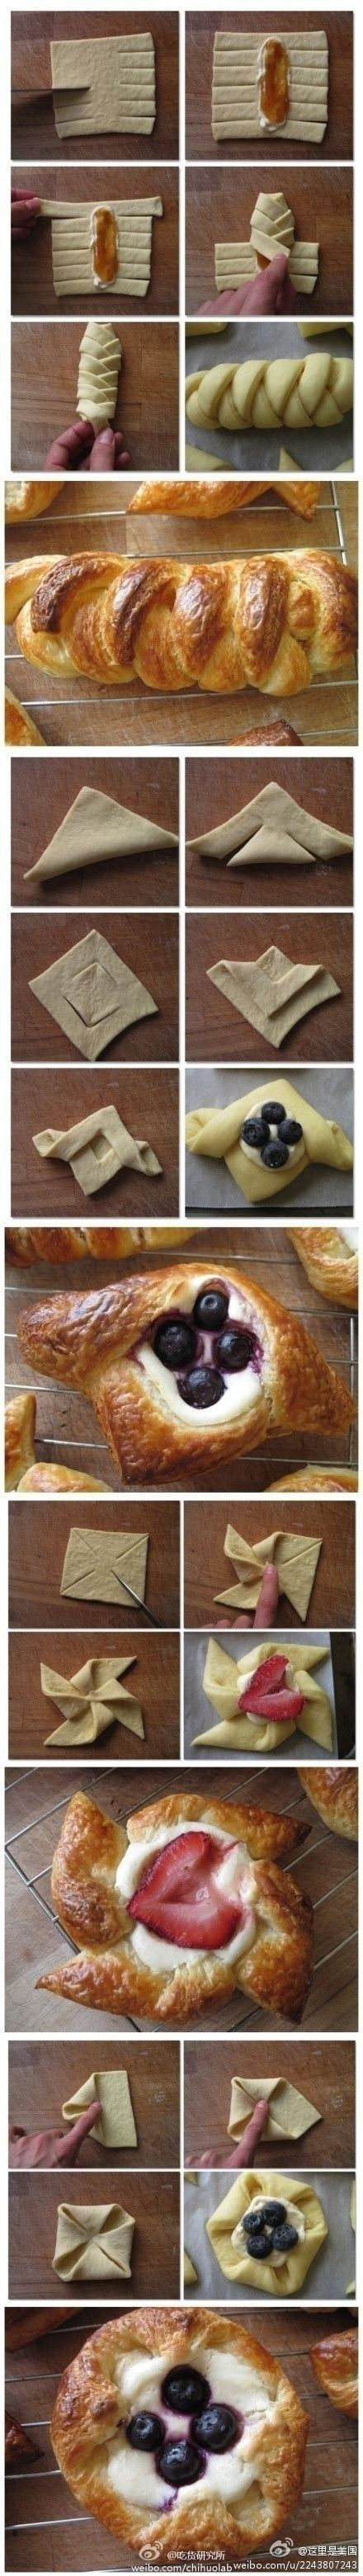 Pastry Folding 101 - FacePalm.com